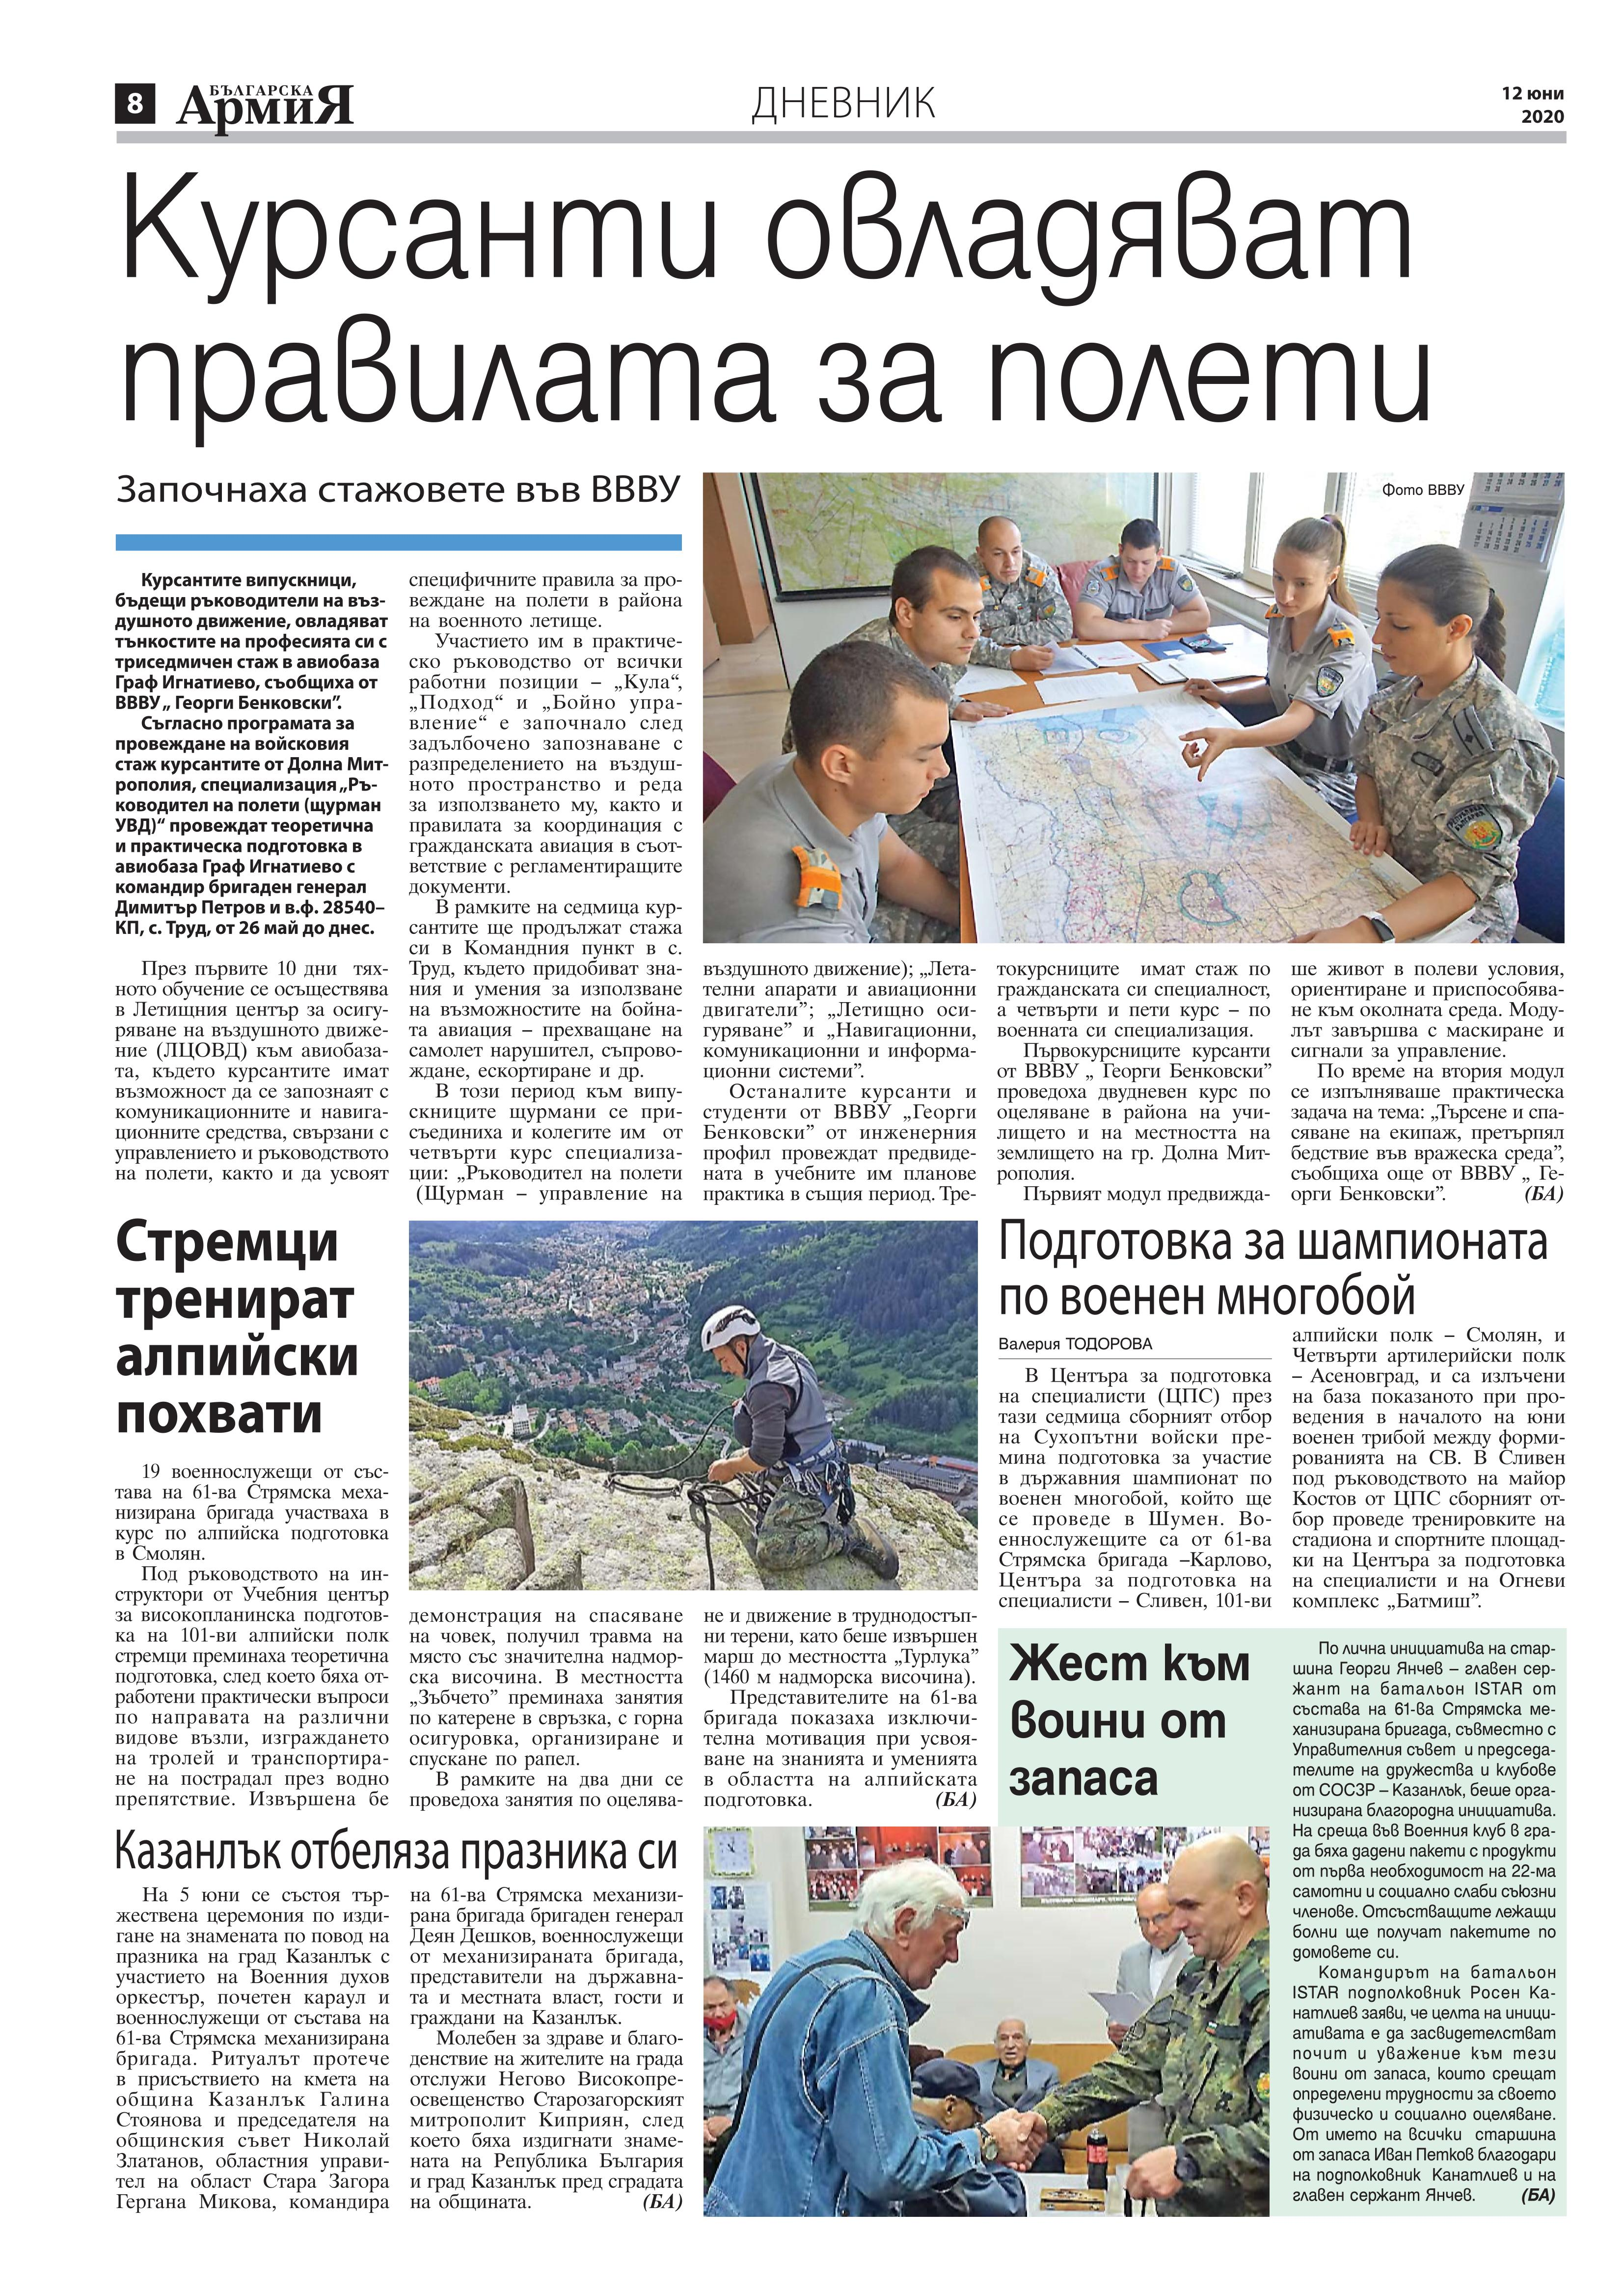 https://www.armymedia.bg/wp-content/uploads/2015/06/08.page1_-140.jpg